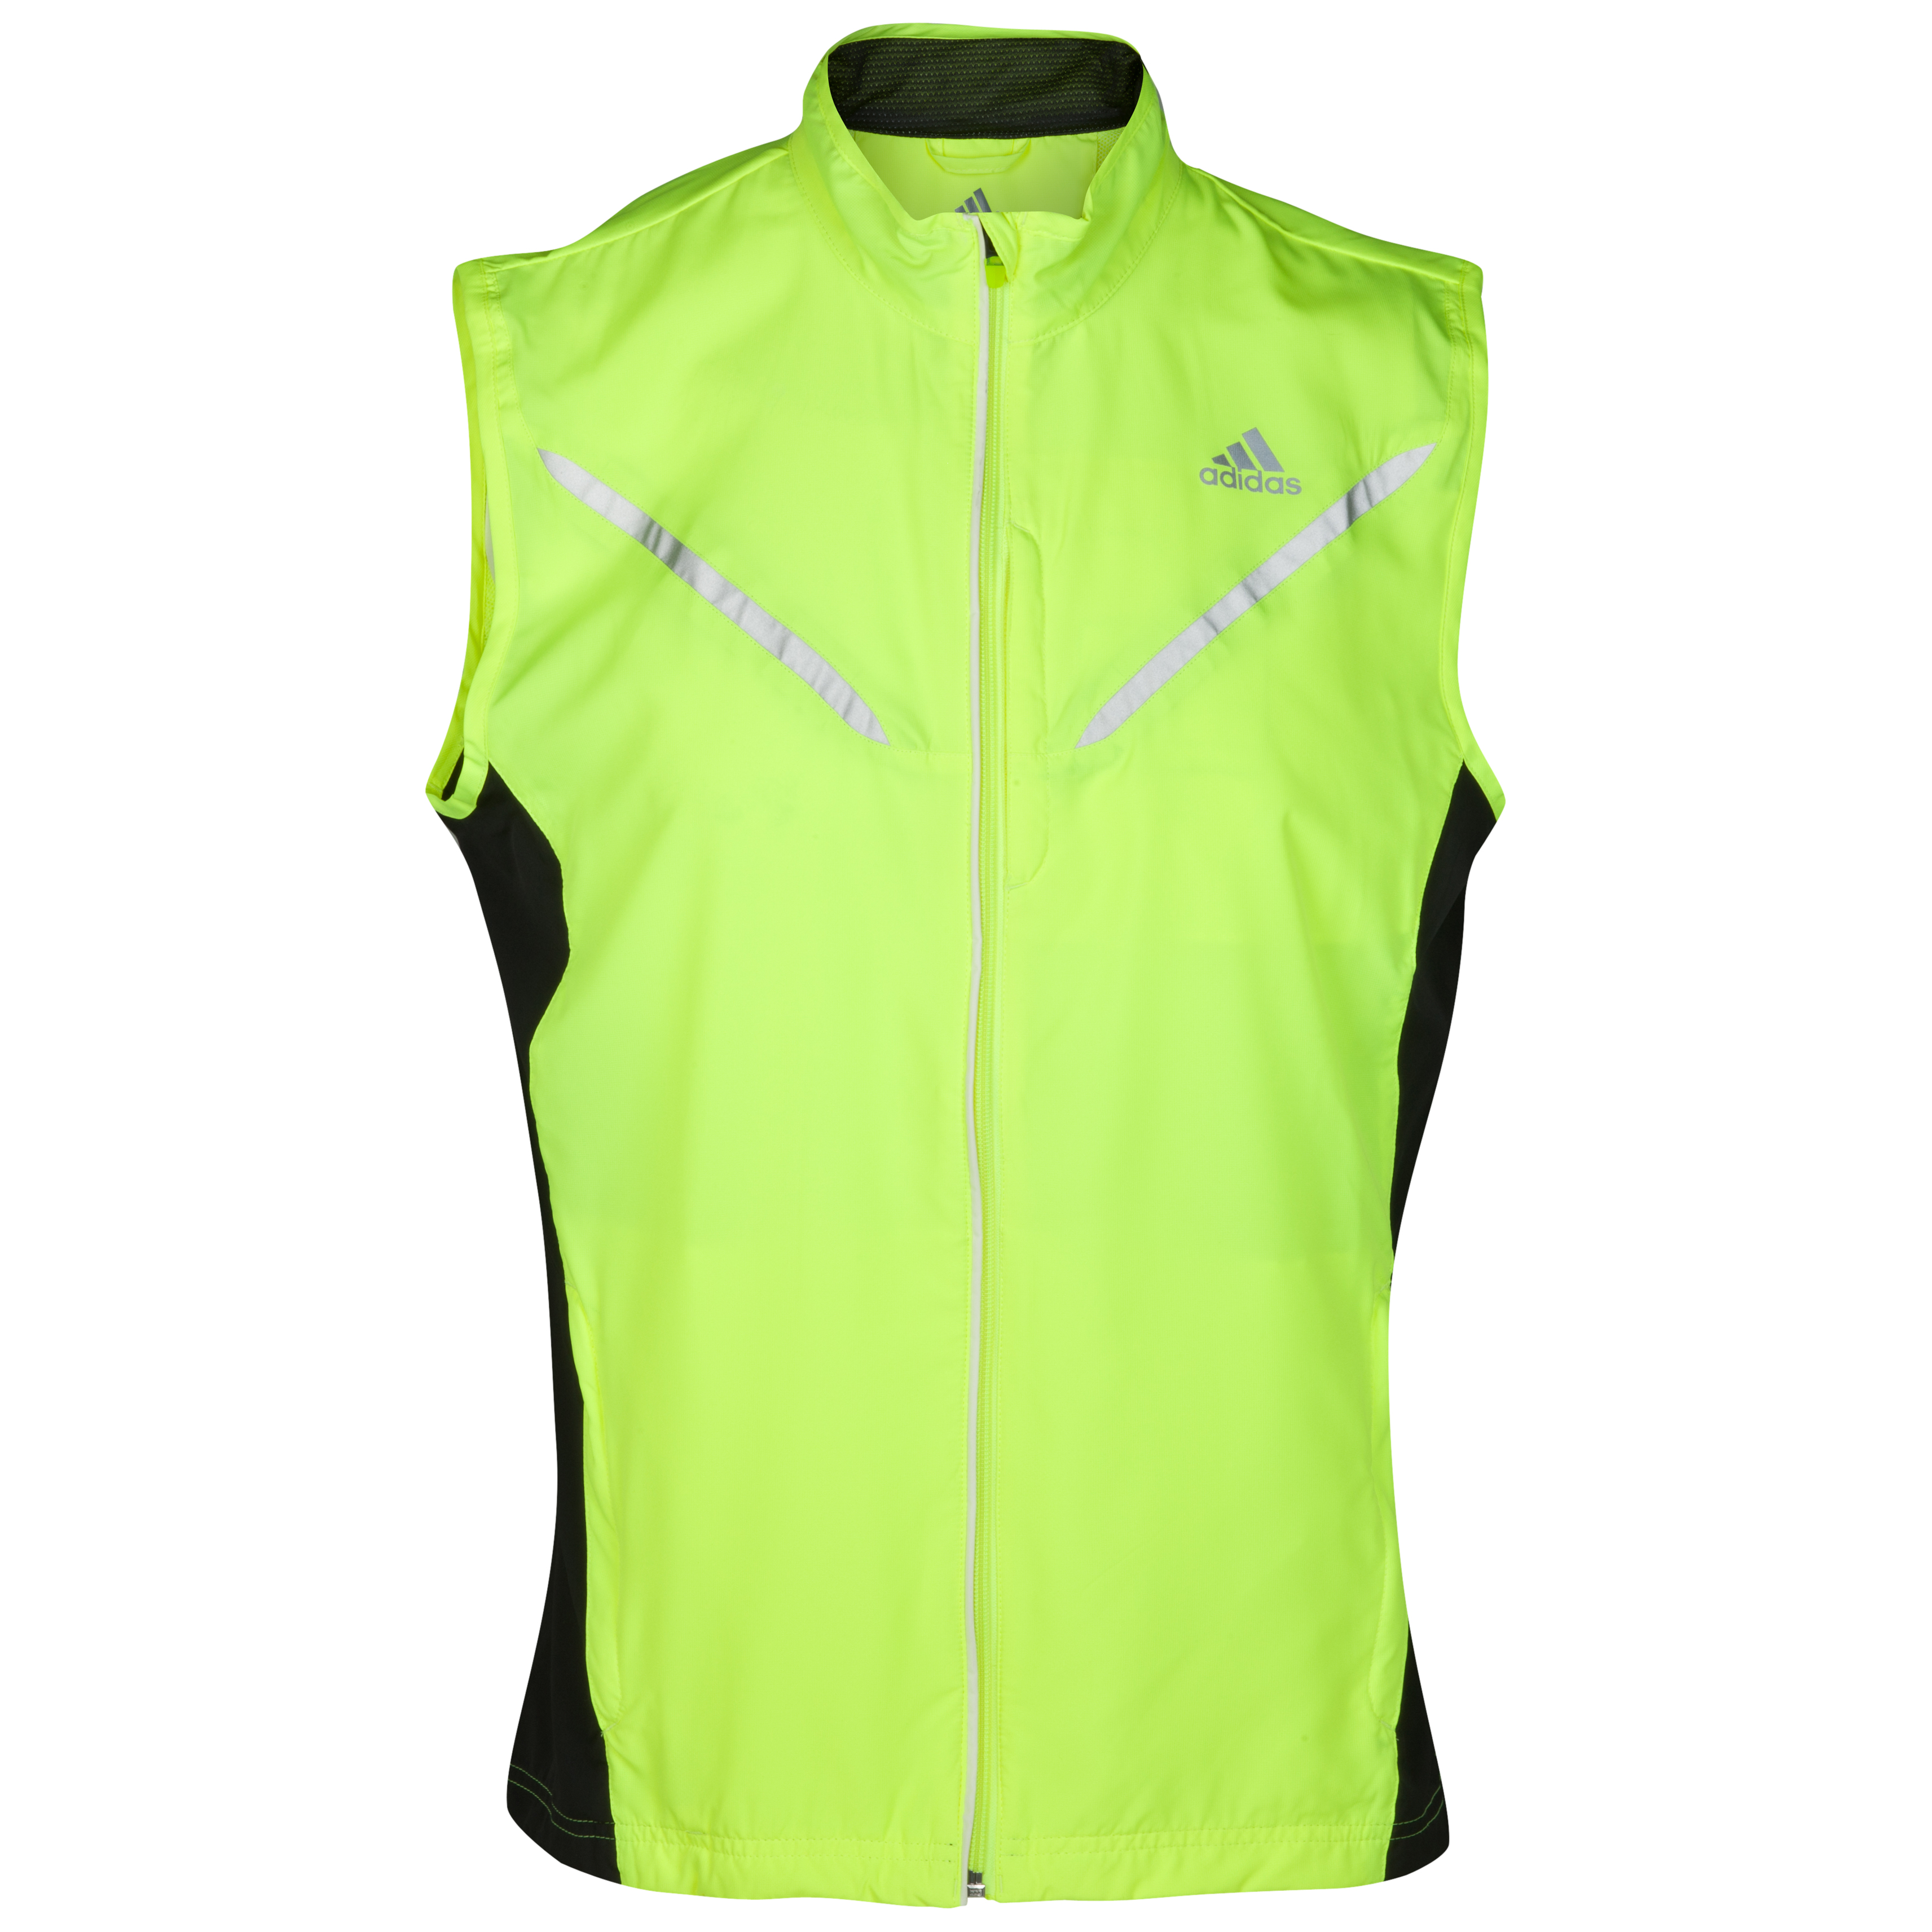 Adidas Sequentials adiViz Vest - Electricity/Black